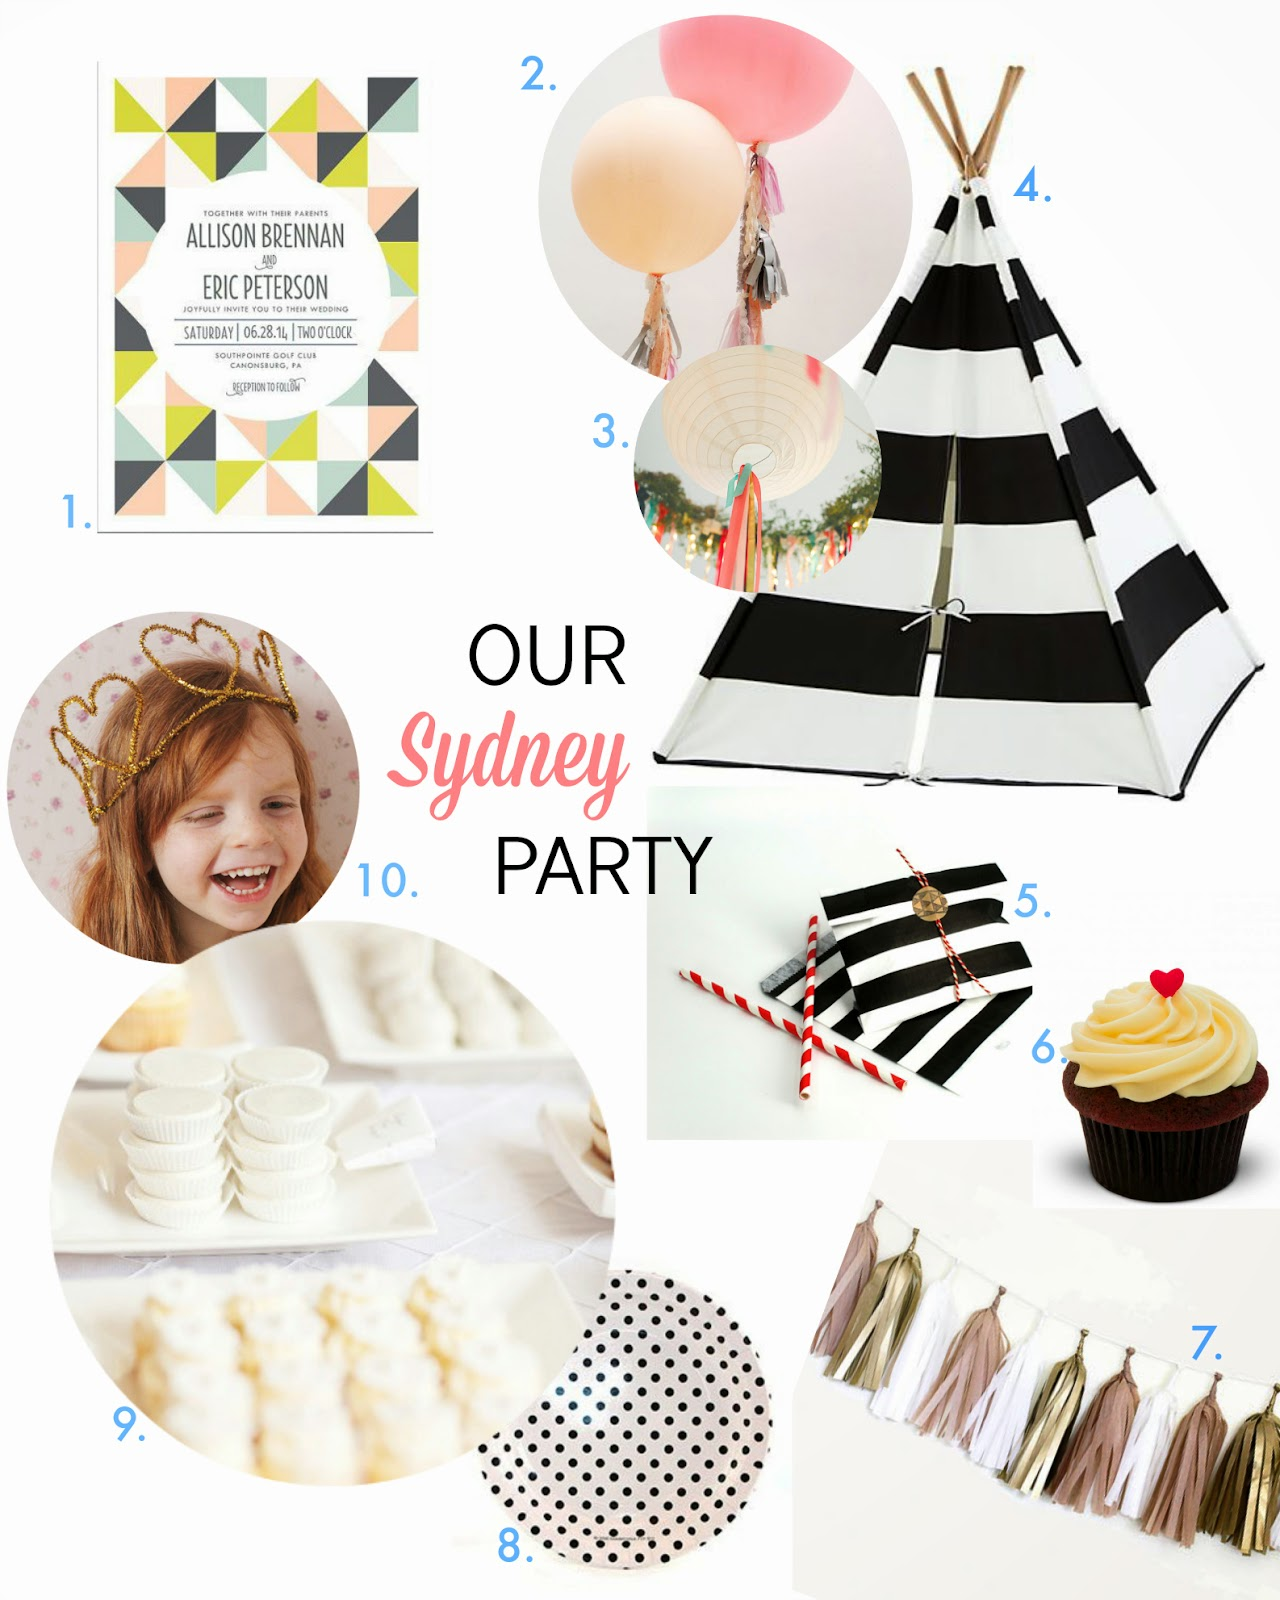 BLACK AND WHITE PARTY, BLACK AND WHITE BABY SHOWER, LAND OF NOD BLACK AND WHITE TEE PEE